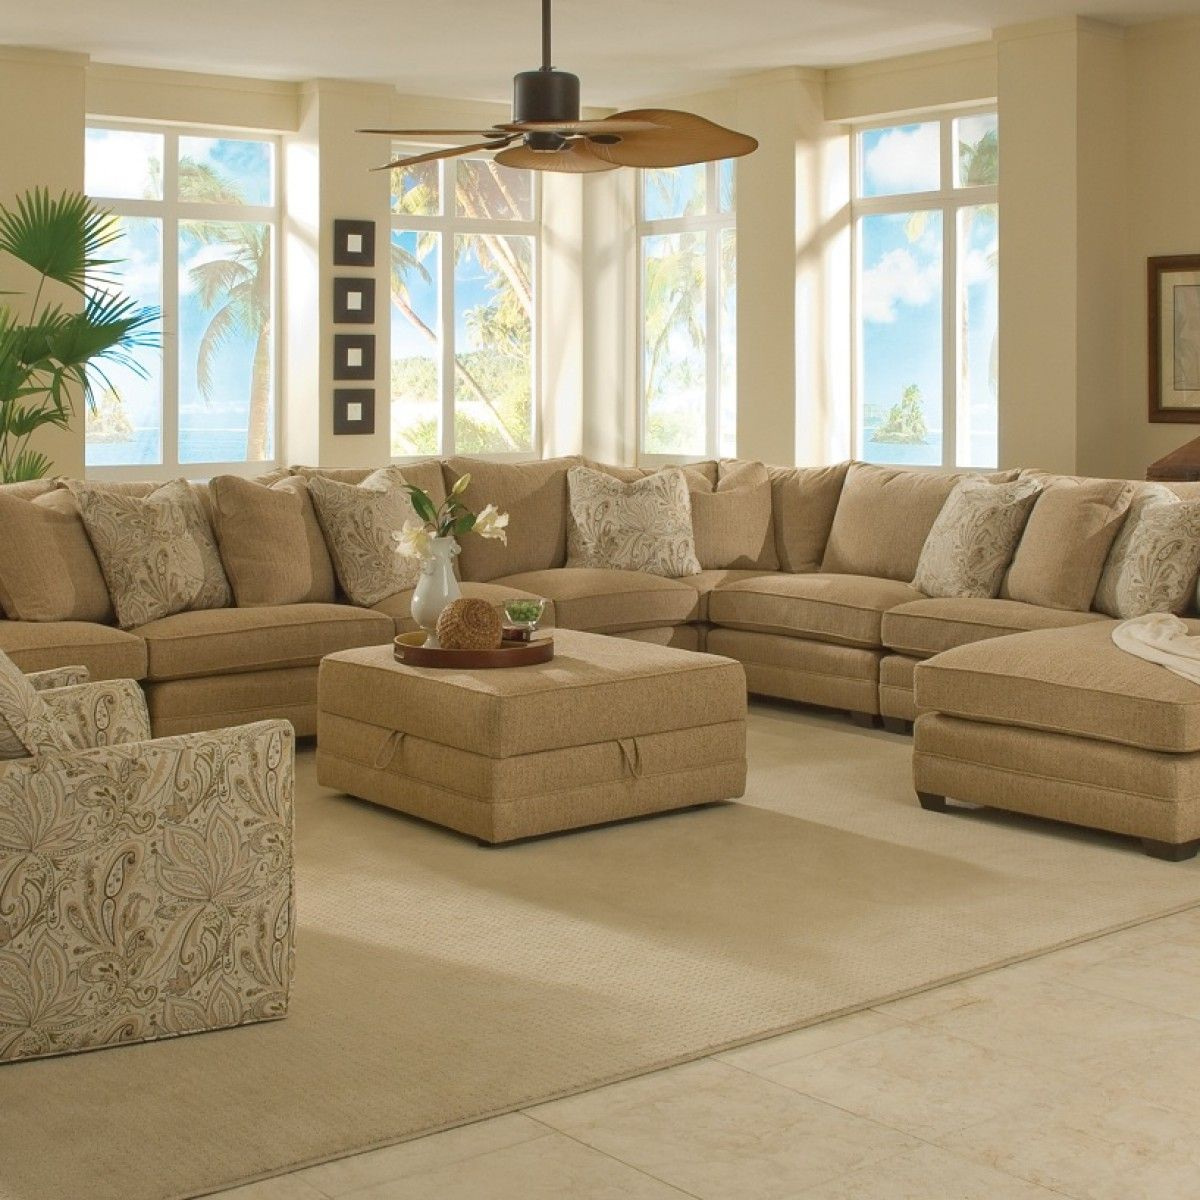 Magnificent Large Sectional Sofas Family Room